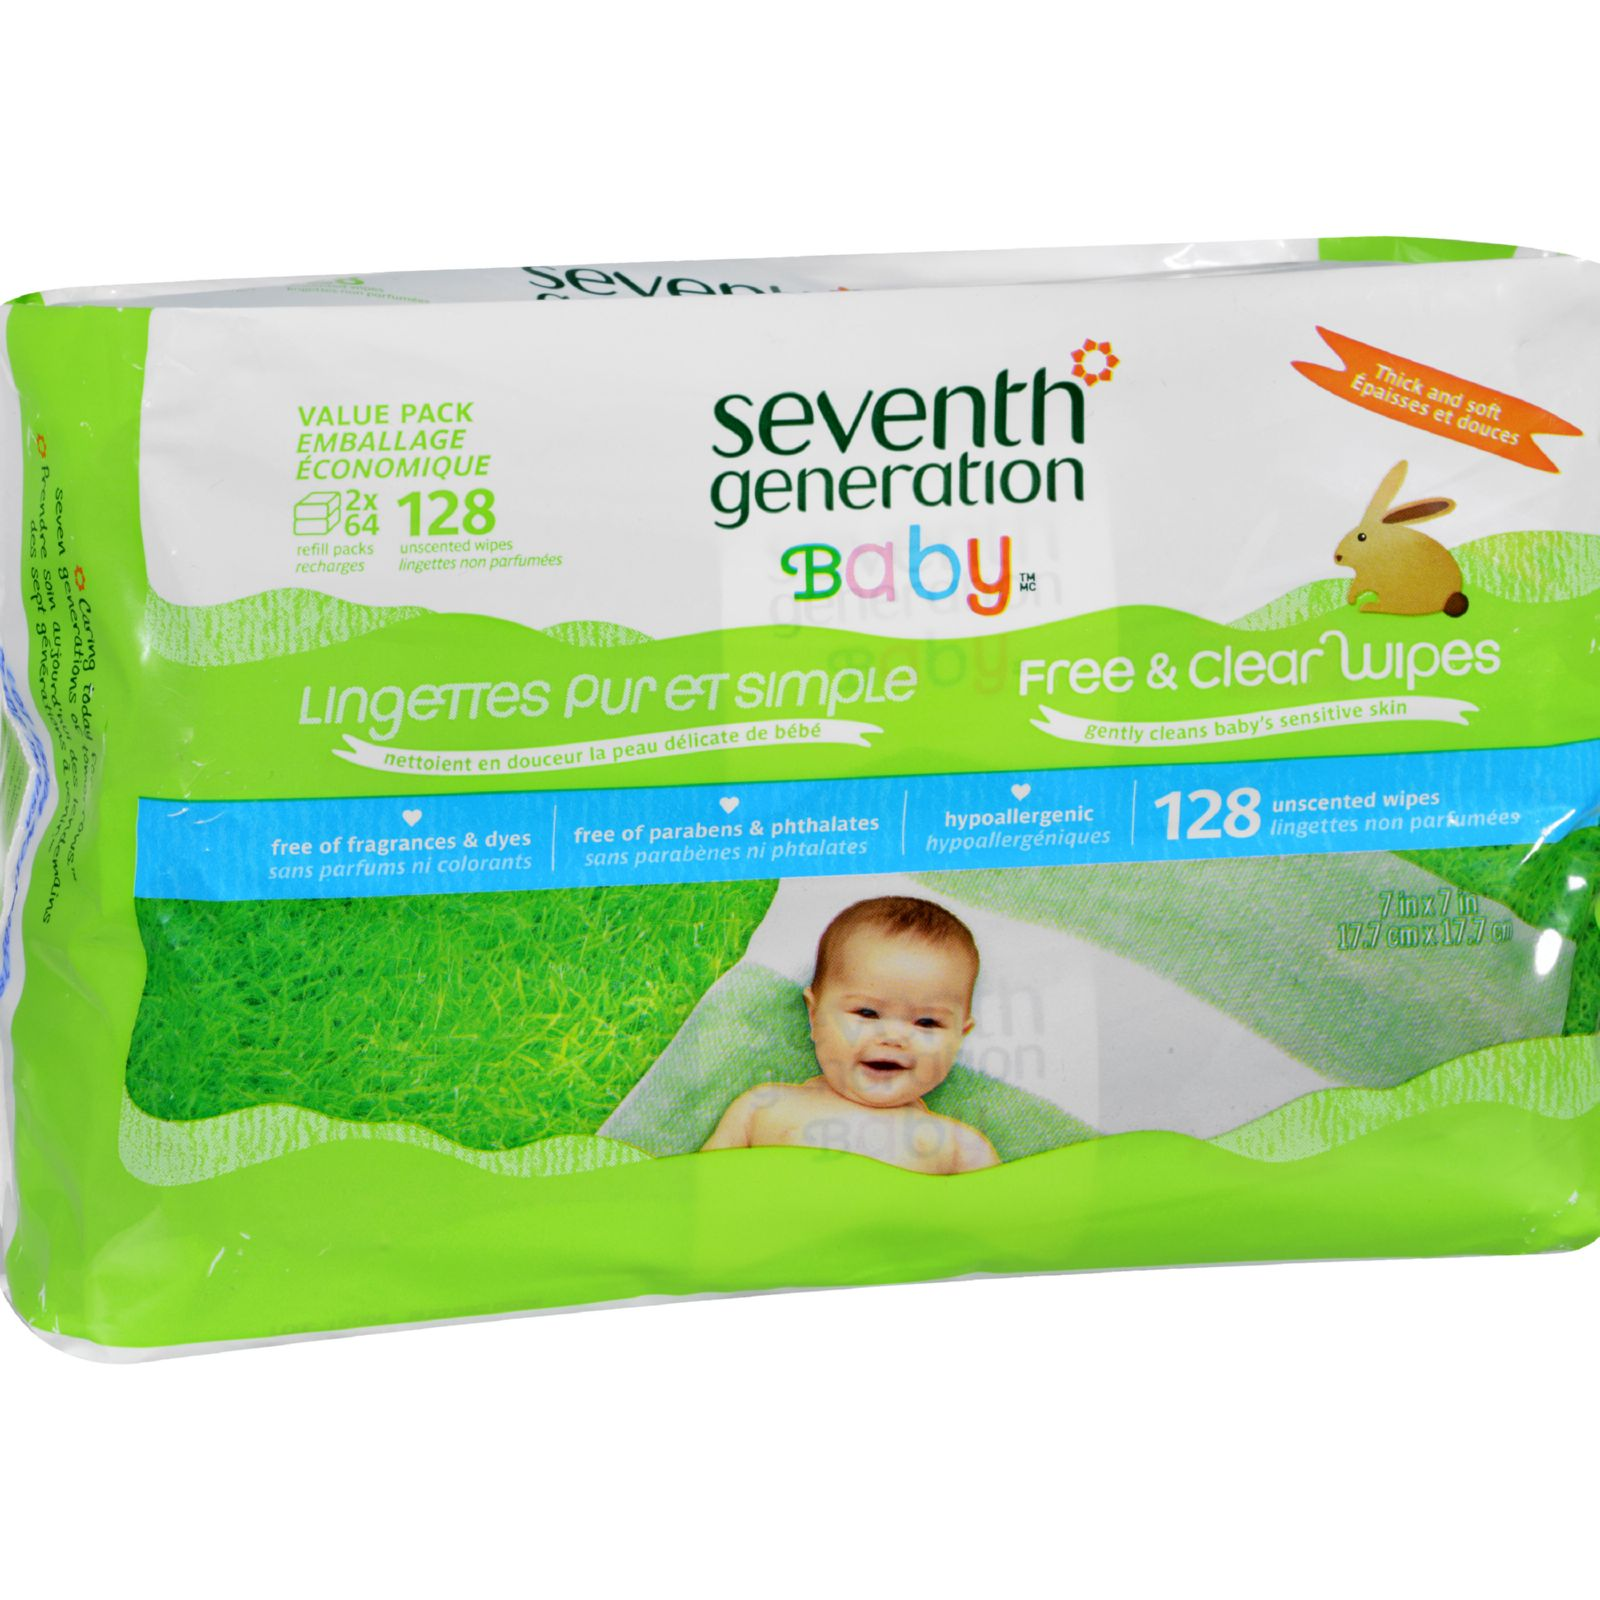 Seventh Generation Baby Wipes Free and Clear Refill 128 ct Case of 6 by Seventh Generation